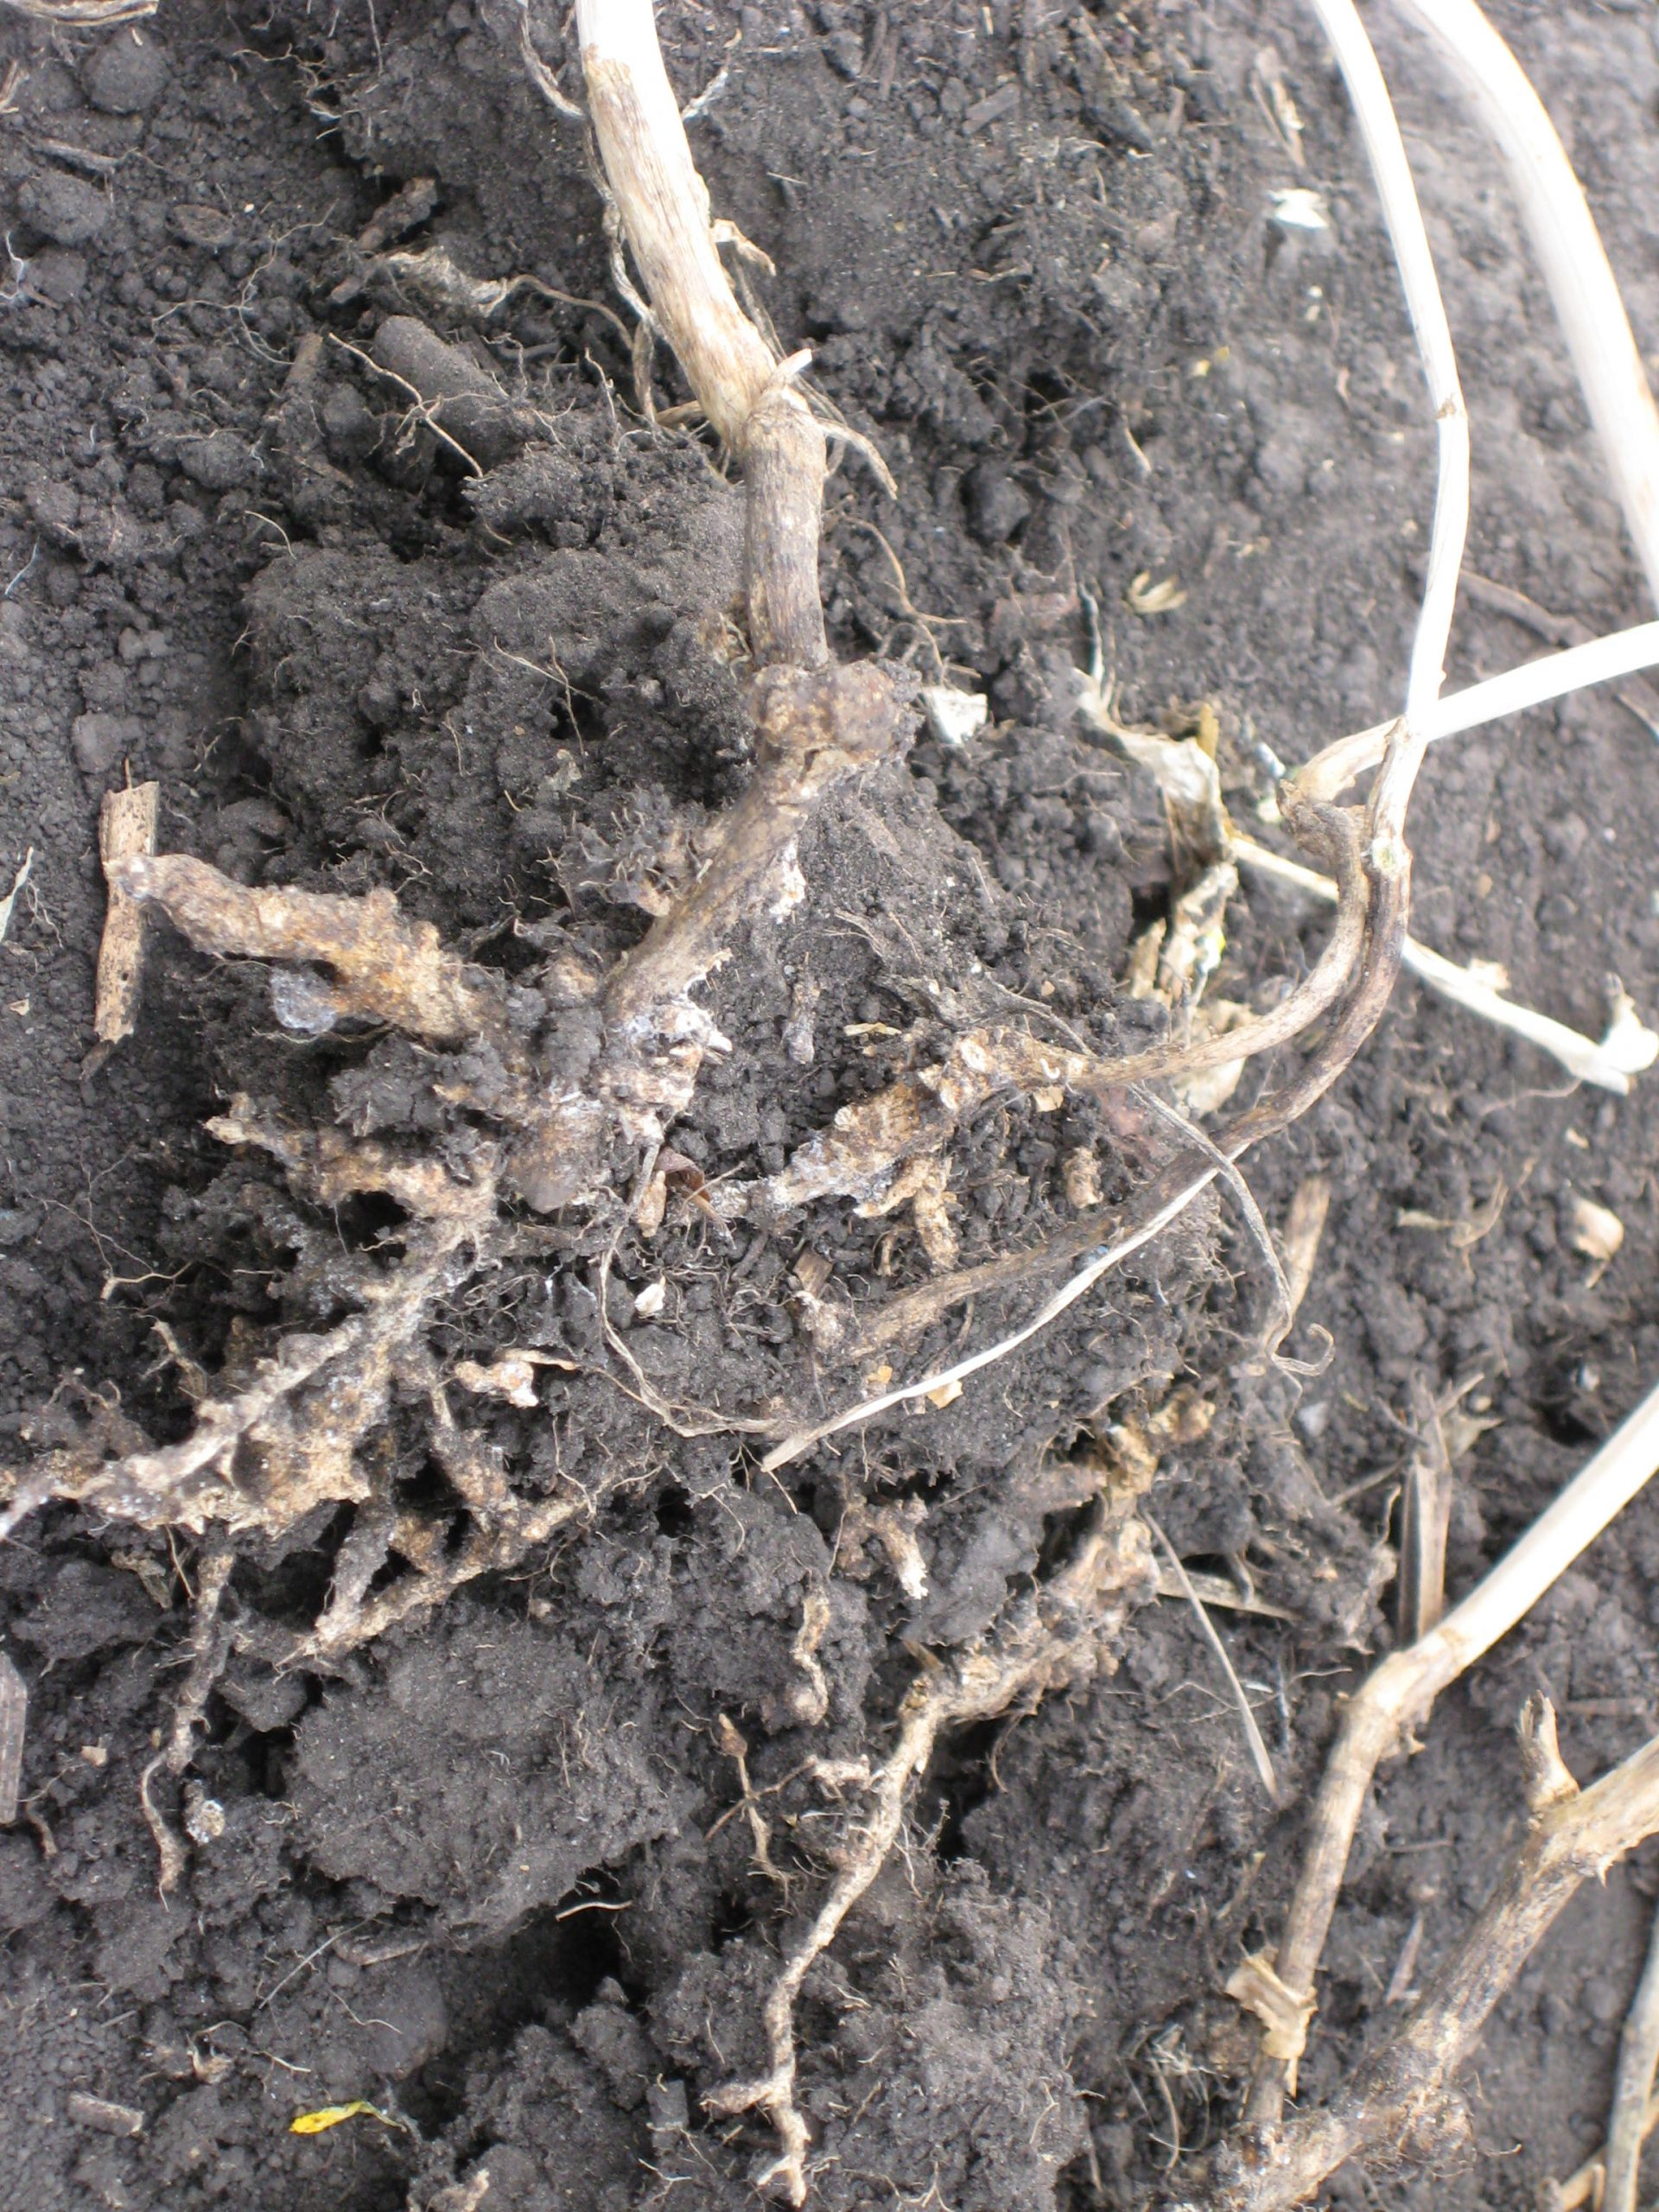 cw2-image-diseases-clubroot-galls-necrotic-1-martinkat